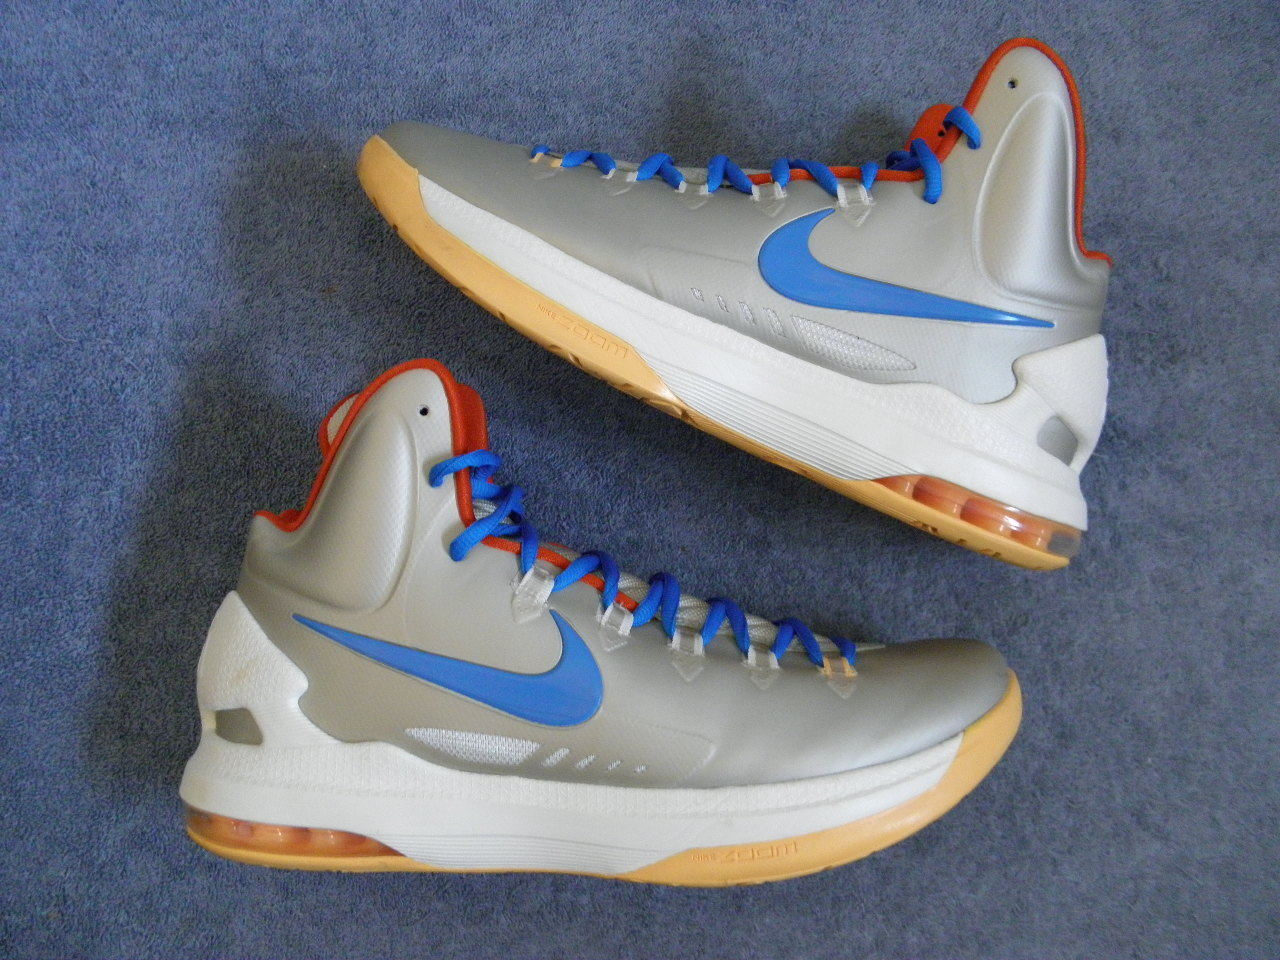 Nike Air KD5 KD 5 V Taille Kevin 11 VNDS worn 1x Kevin Taille Durant eybl peach jam elite BIRCH 1f19f9